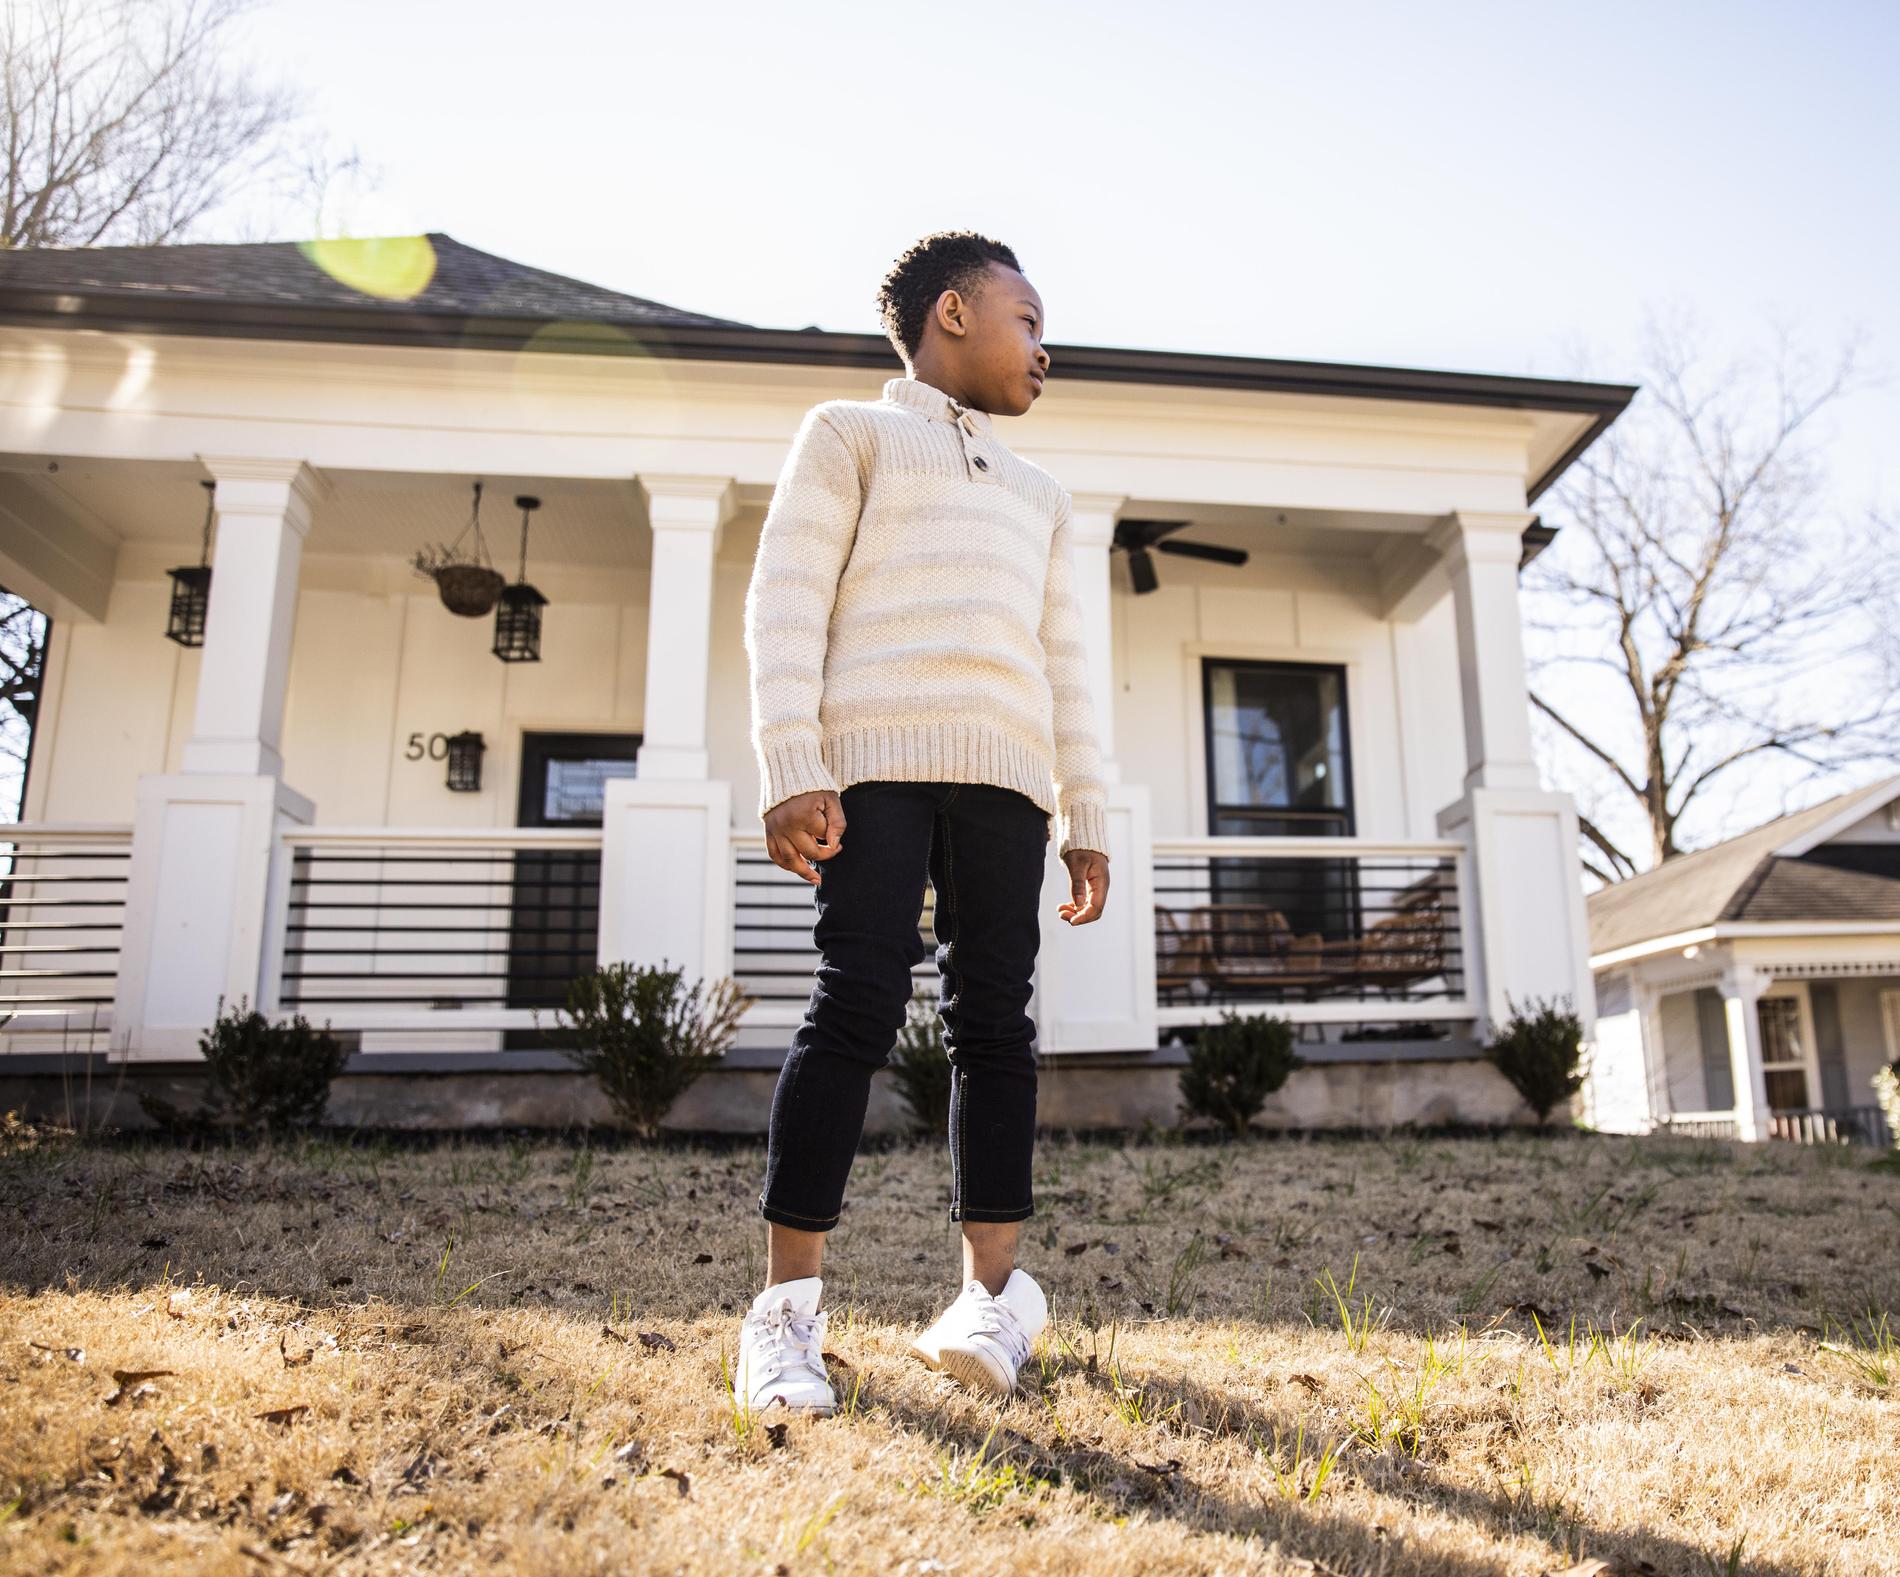 Portrait of young boy in front of home